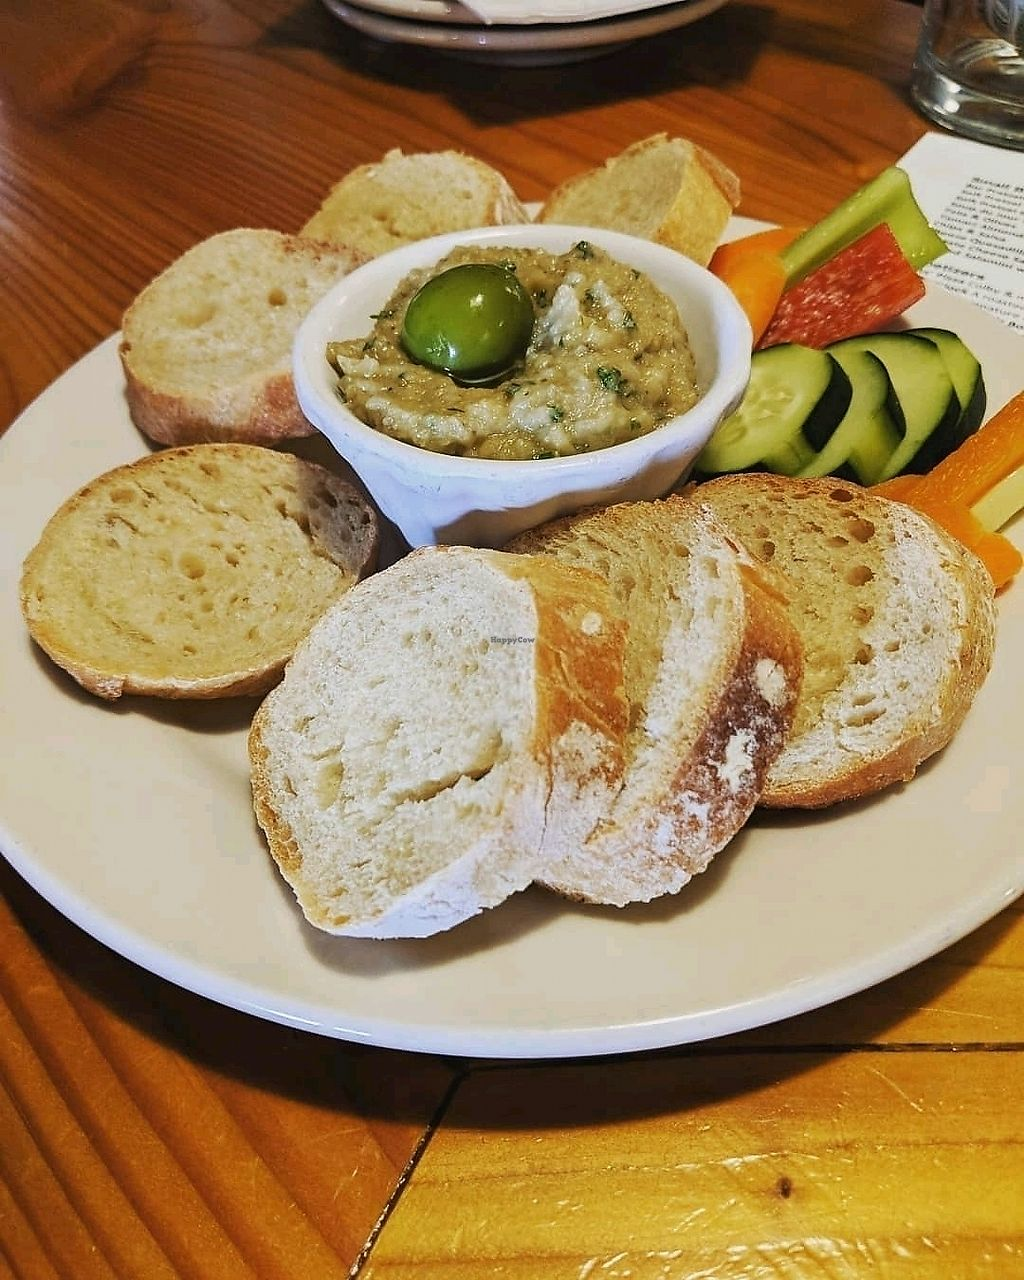 "Photo of Roots Brewing Company  by <a href=""/members/profile/ToriKriegel"">ToriKriegel</a> <br/>eggplant dip <br/> April 13, 2018  - <a href='/contact/abuse/image/116458/385330'>Report</a>"